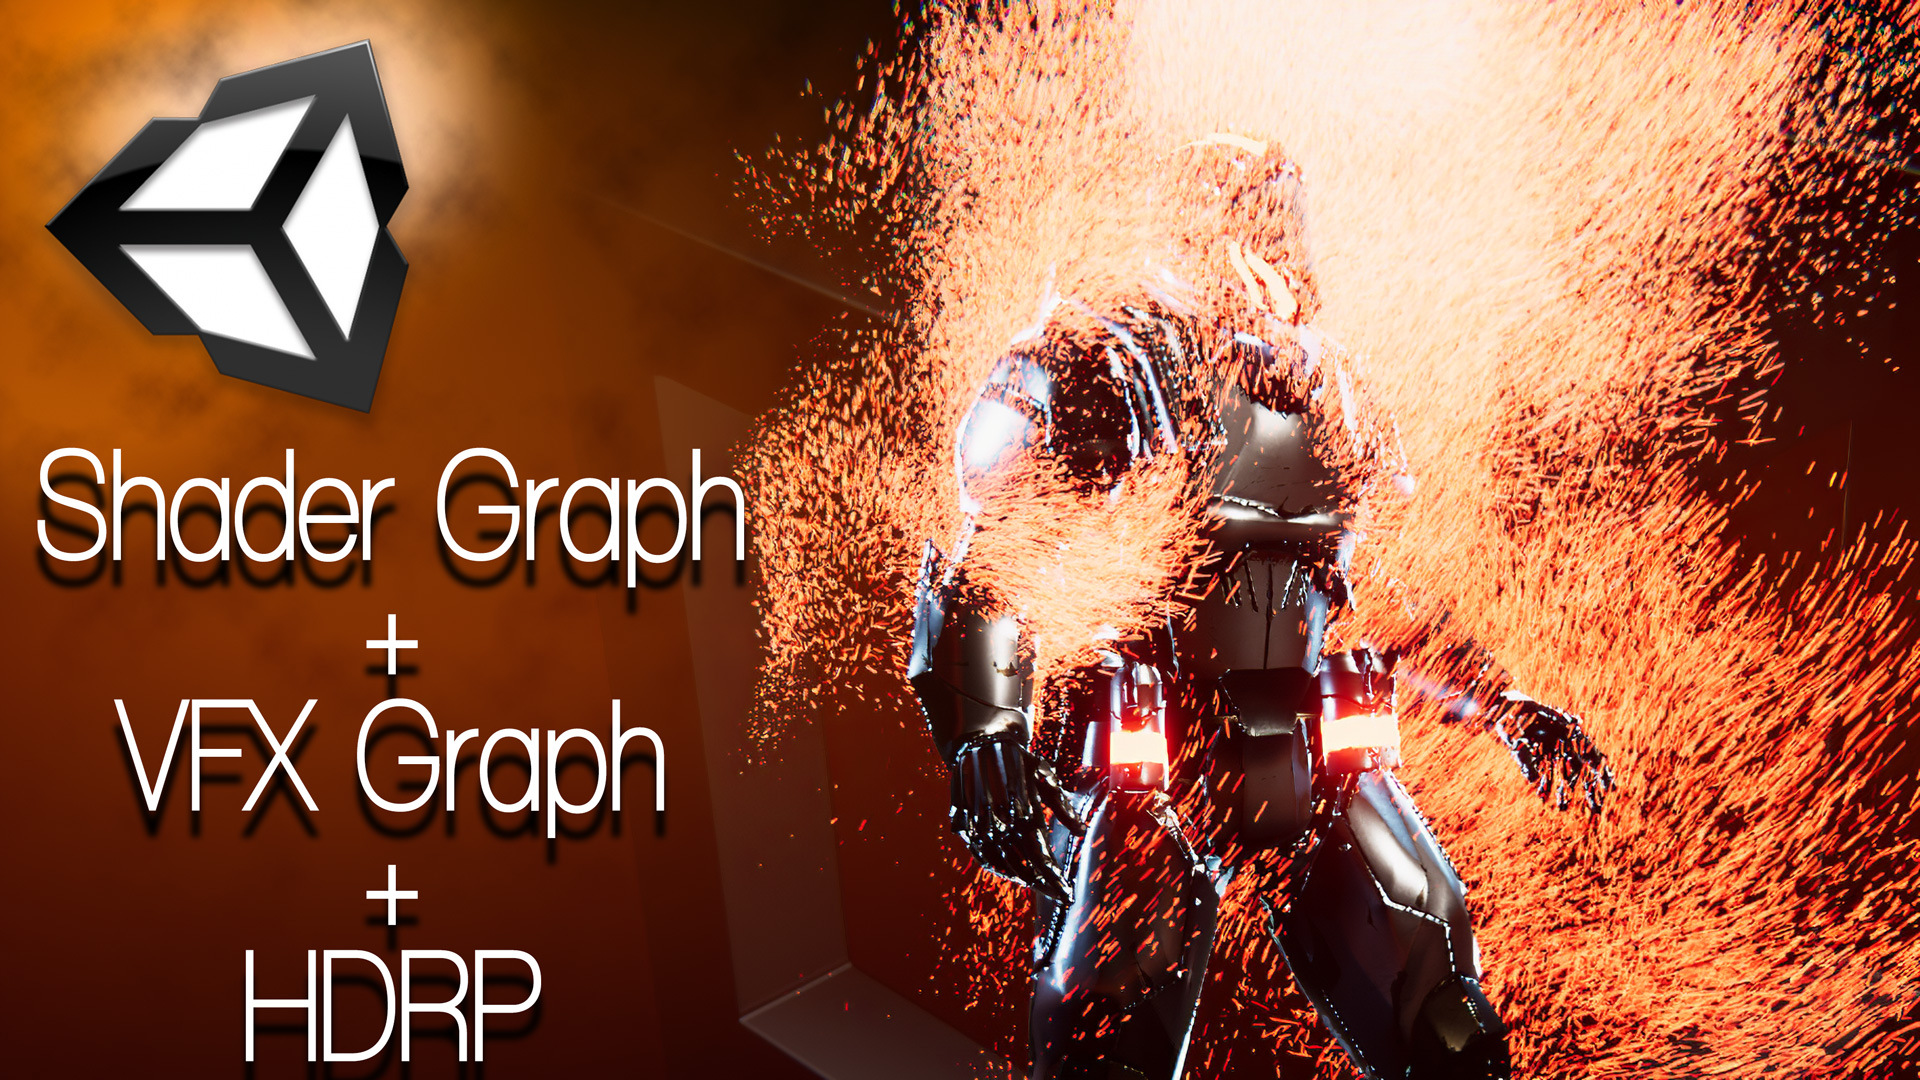 VFX Graph / Shader Graph